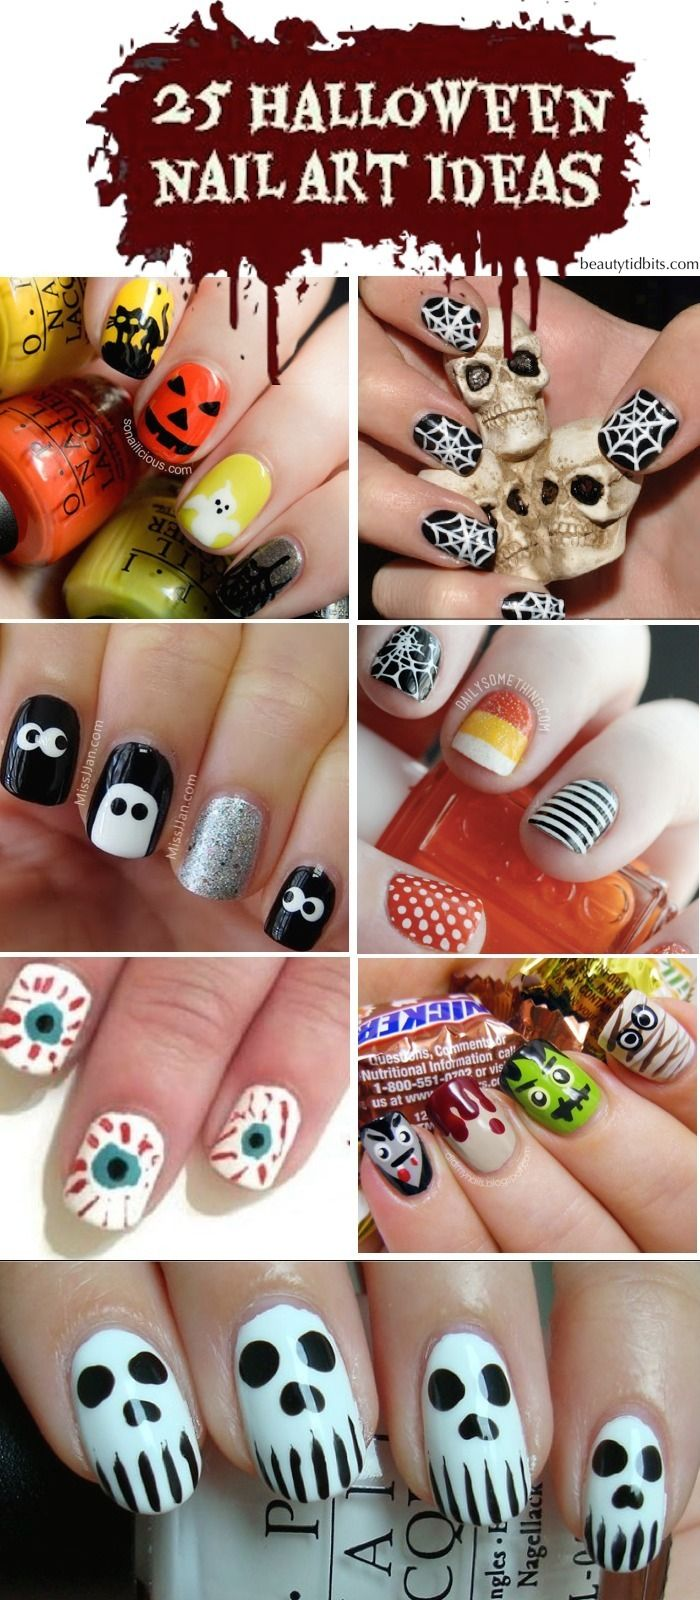 Halloween nail art ideas via @beautytidbits